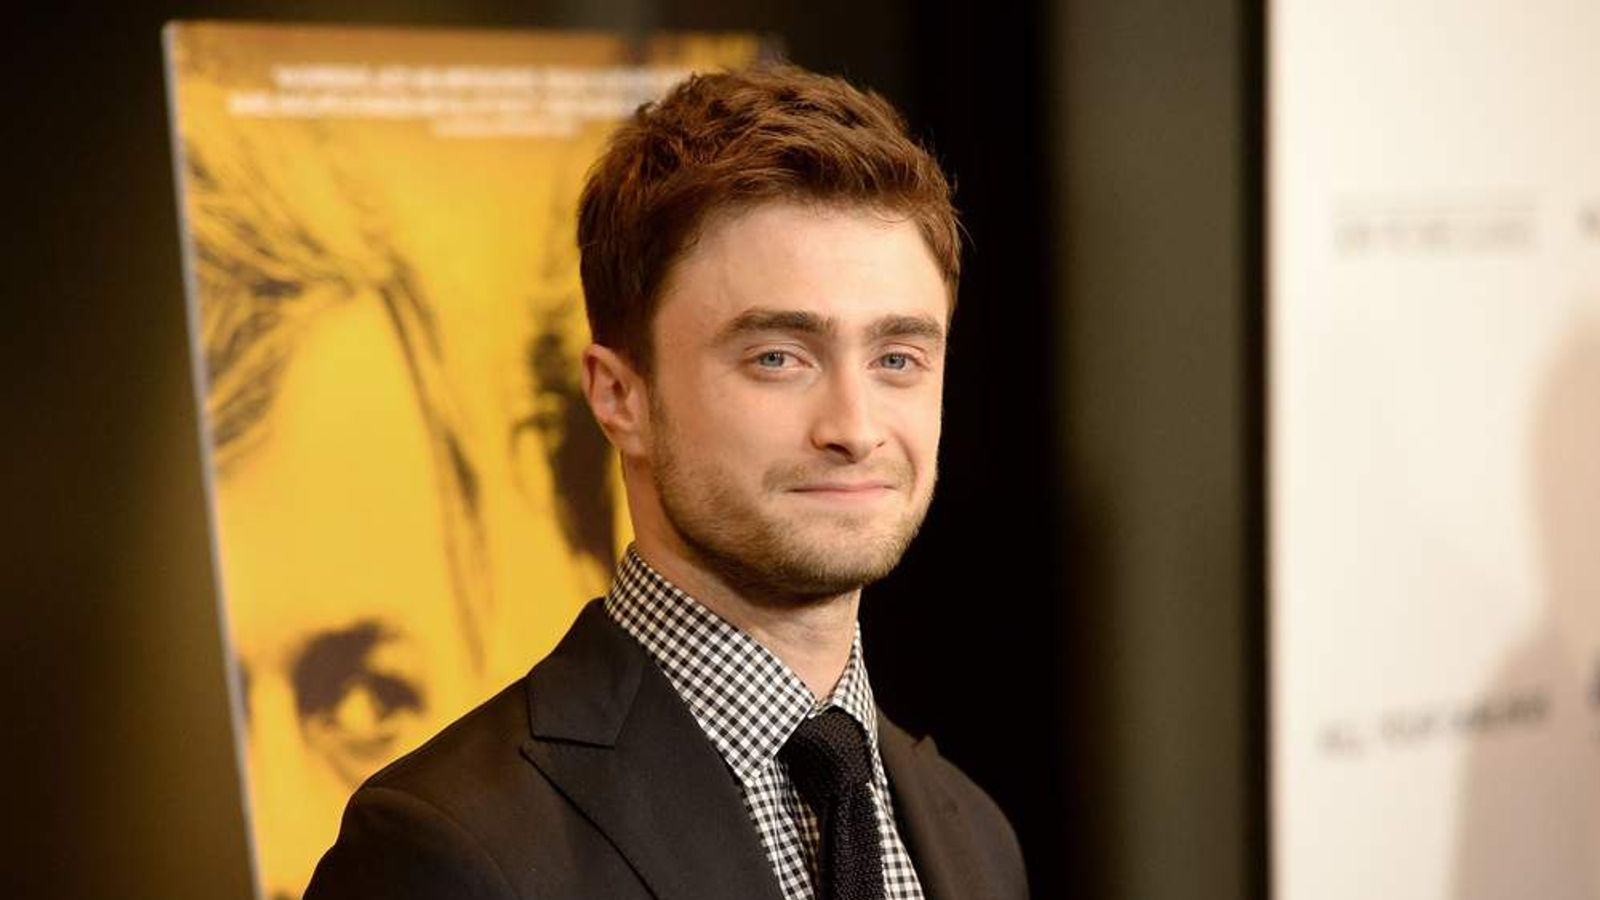 Daniel Radcliffe At Premiere Of Kill Your Darlings